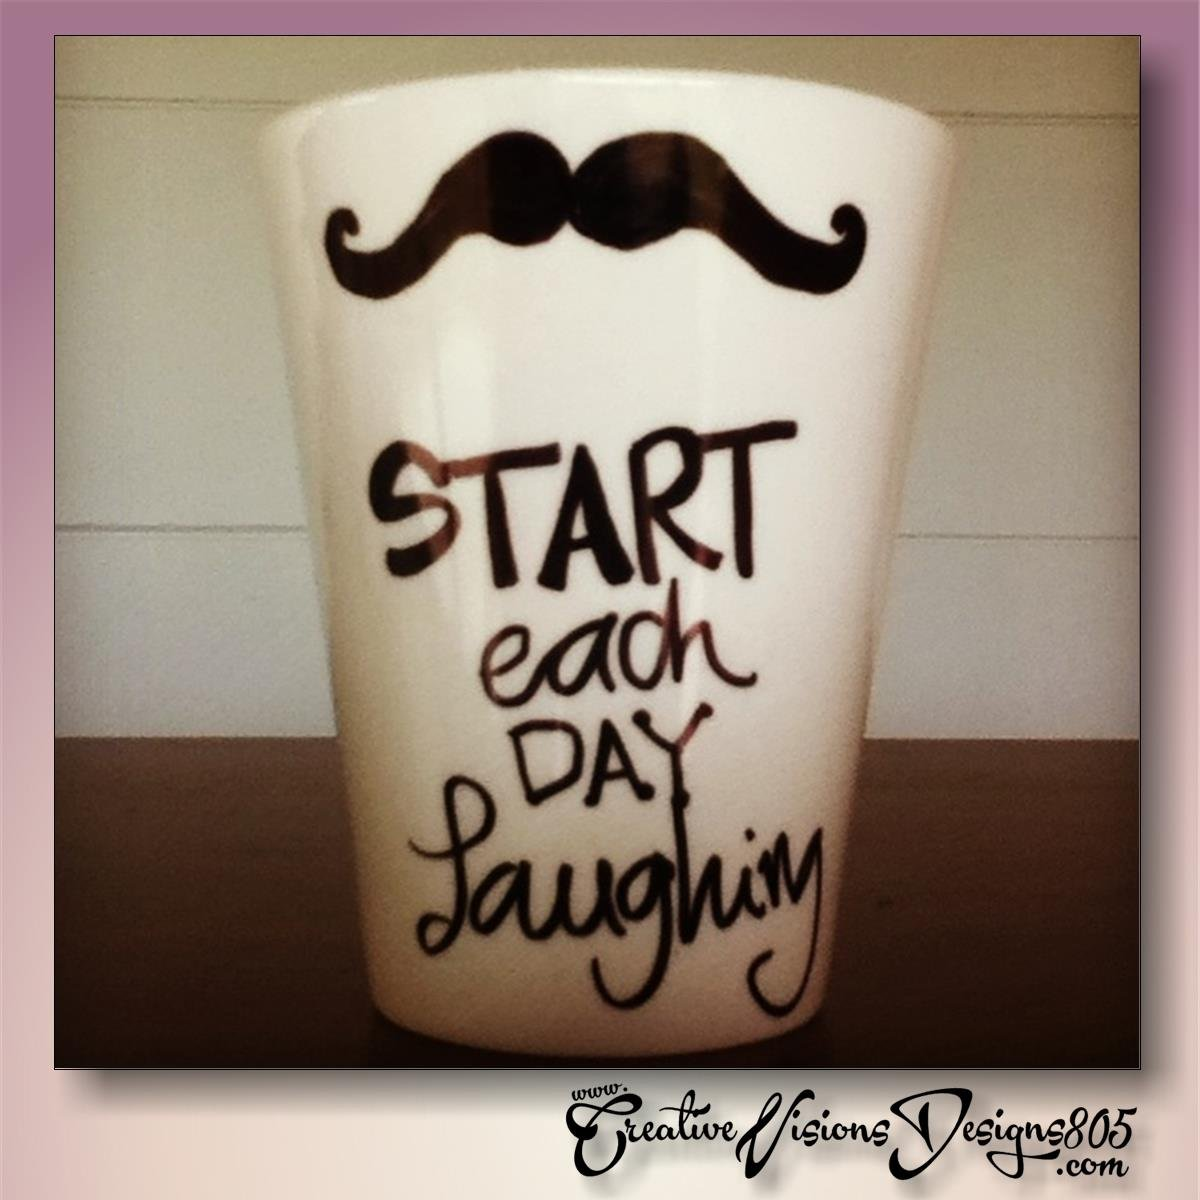 START EACH DAY LAUGHING - hand decorated coffee mug